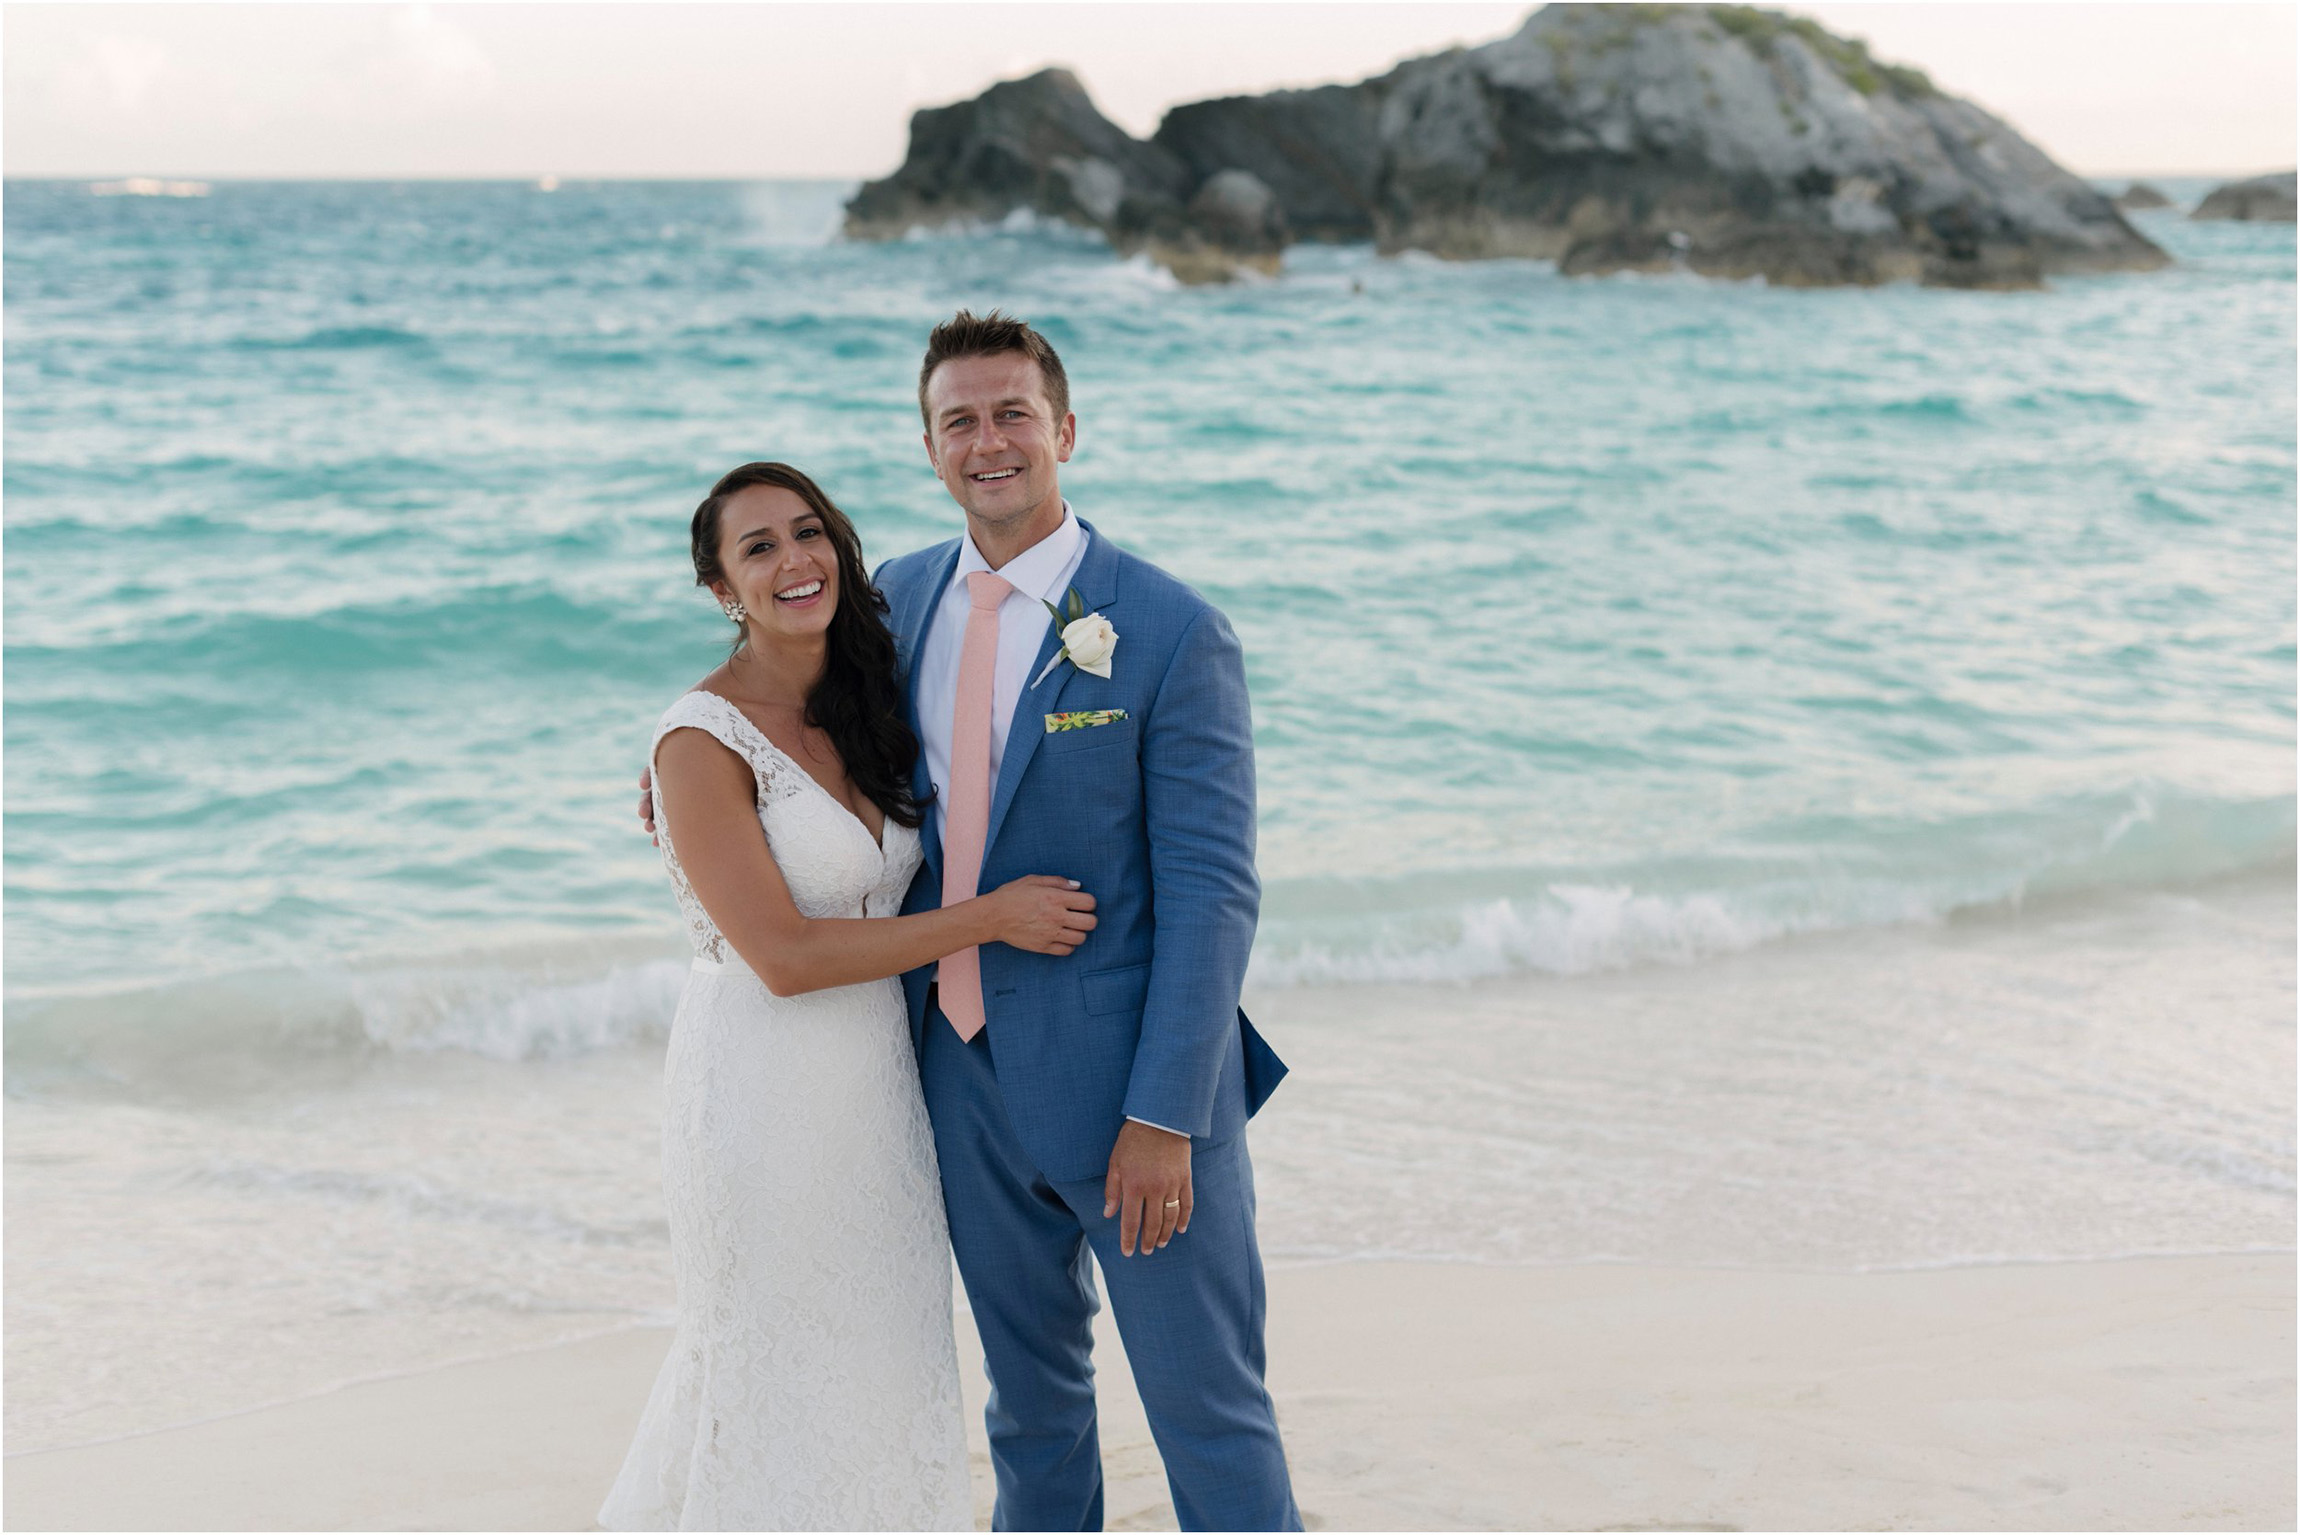 ©FianderFoto_Bermuda Wedding Photographer_Fairmont Southampton_Wedding_Anna_Thomas_095.jpg